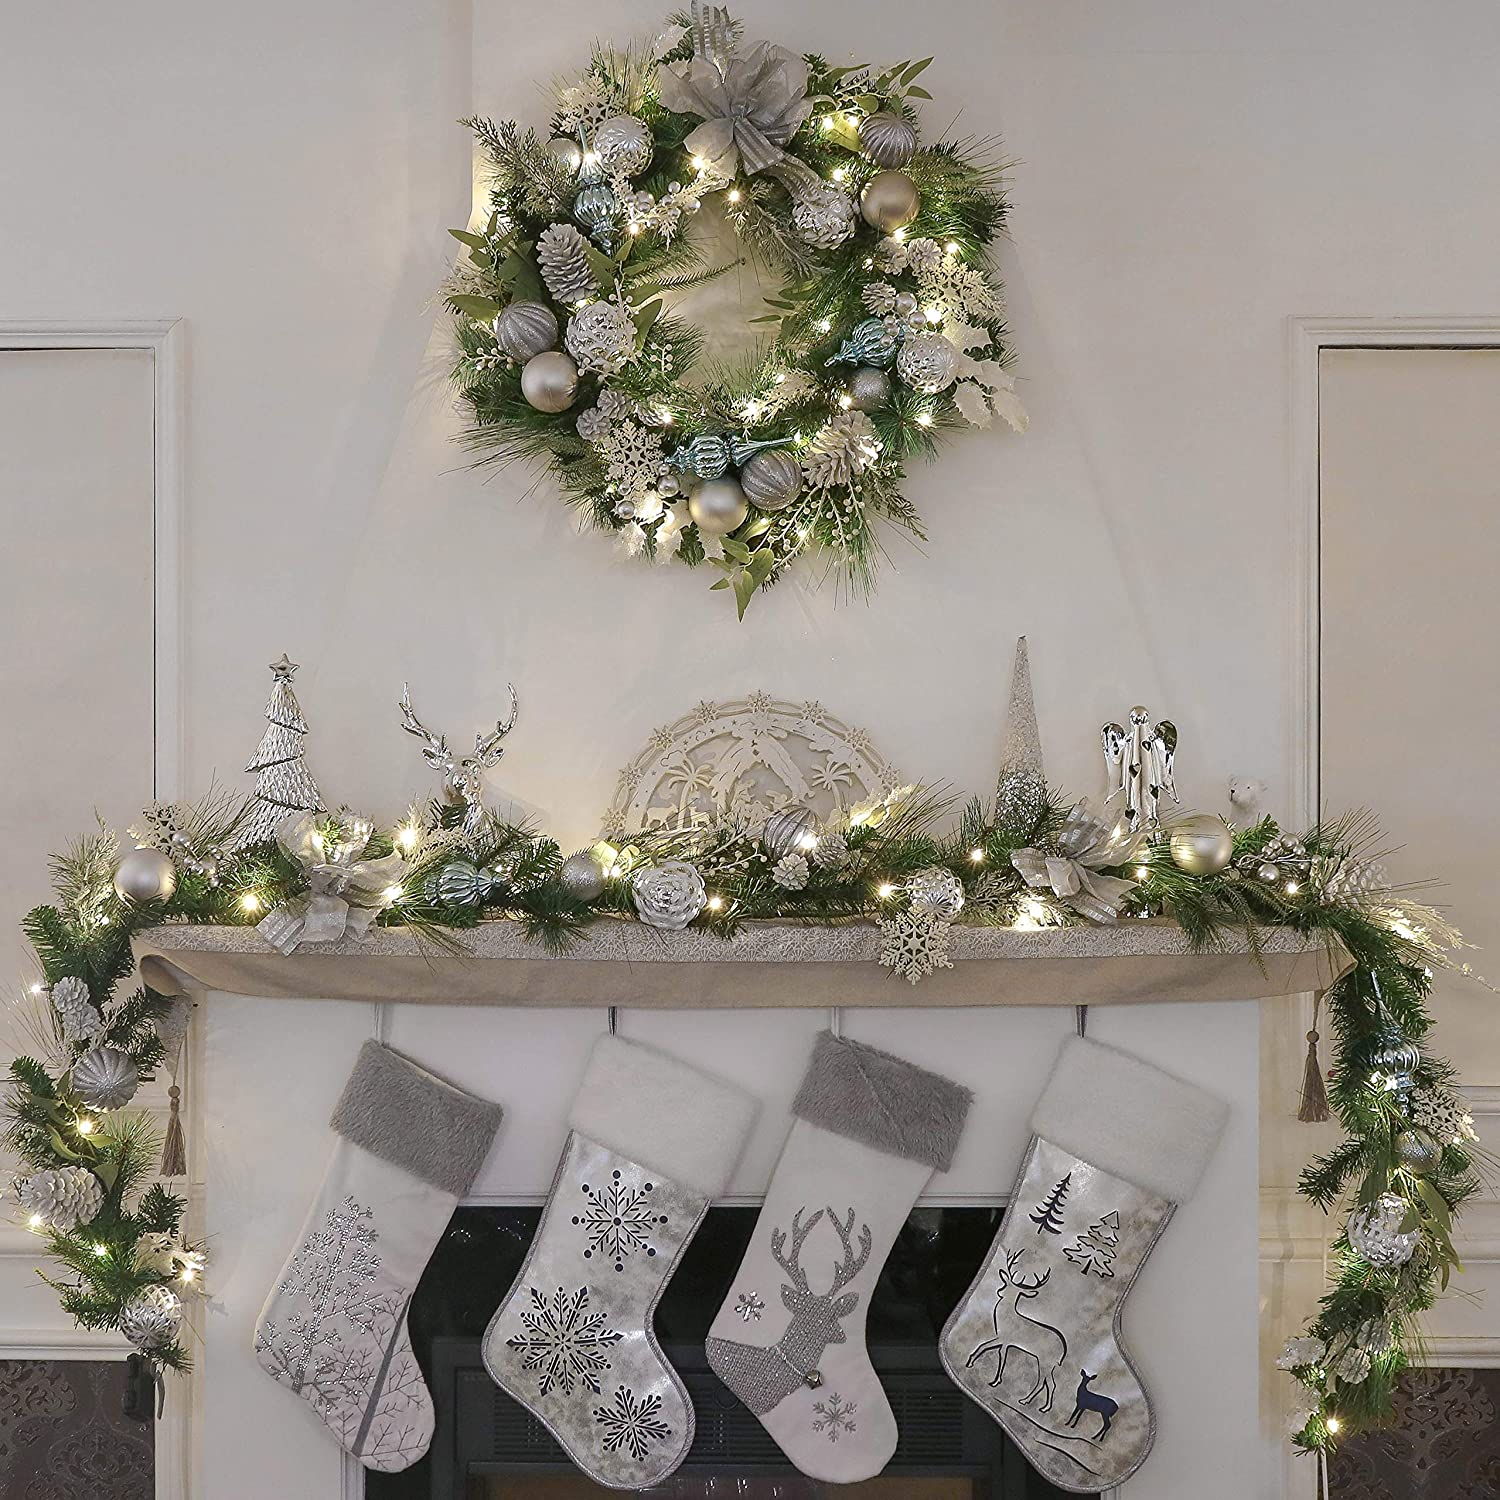 Valery Madelyn Pre-Lit 30 inch Frozen Winter Silver White Christmas Wreaths for Front Door with Lights Ball Ornaments Snowflake Battery Operated 40 LED Lights Wreath for Outdoor Home Window Fireplace